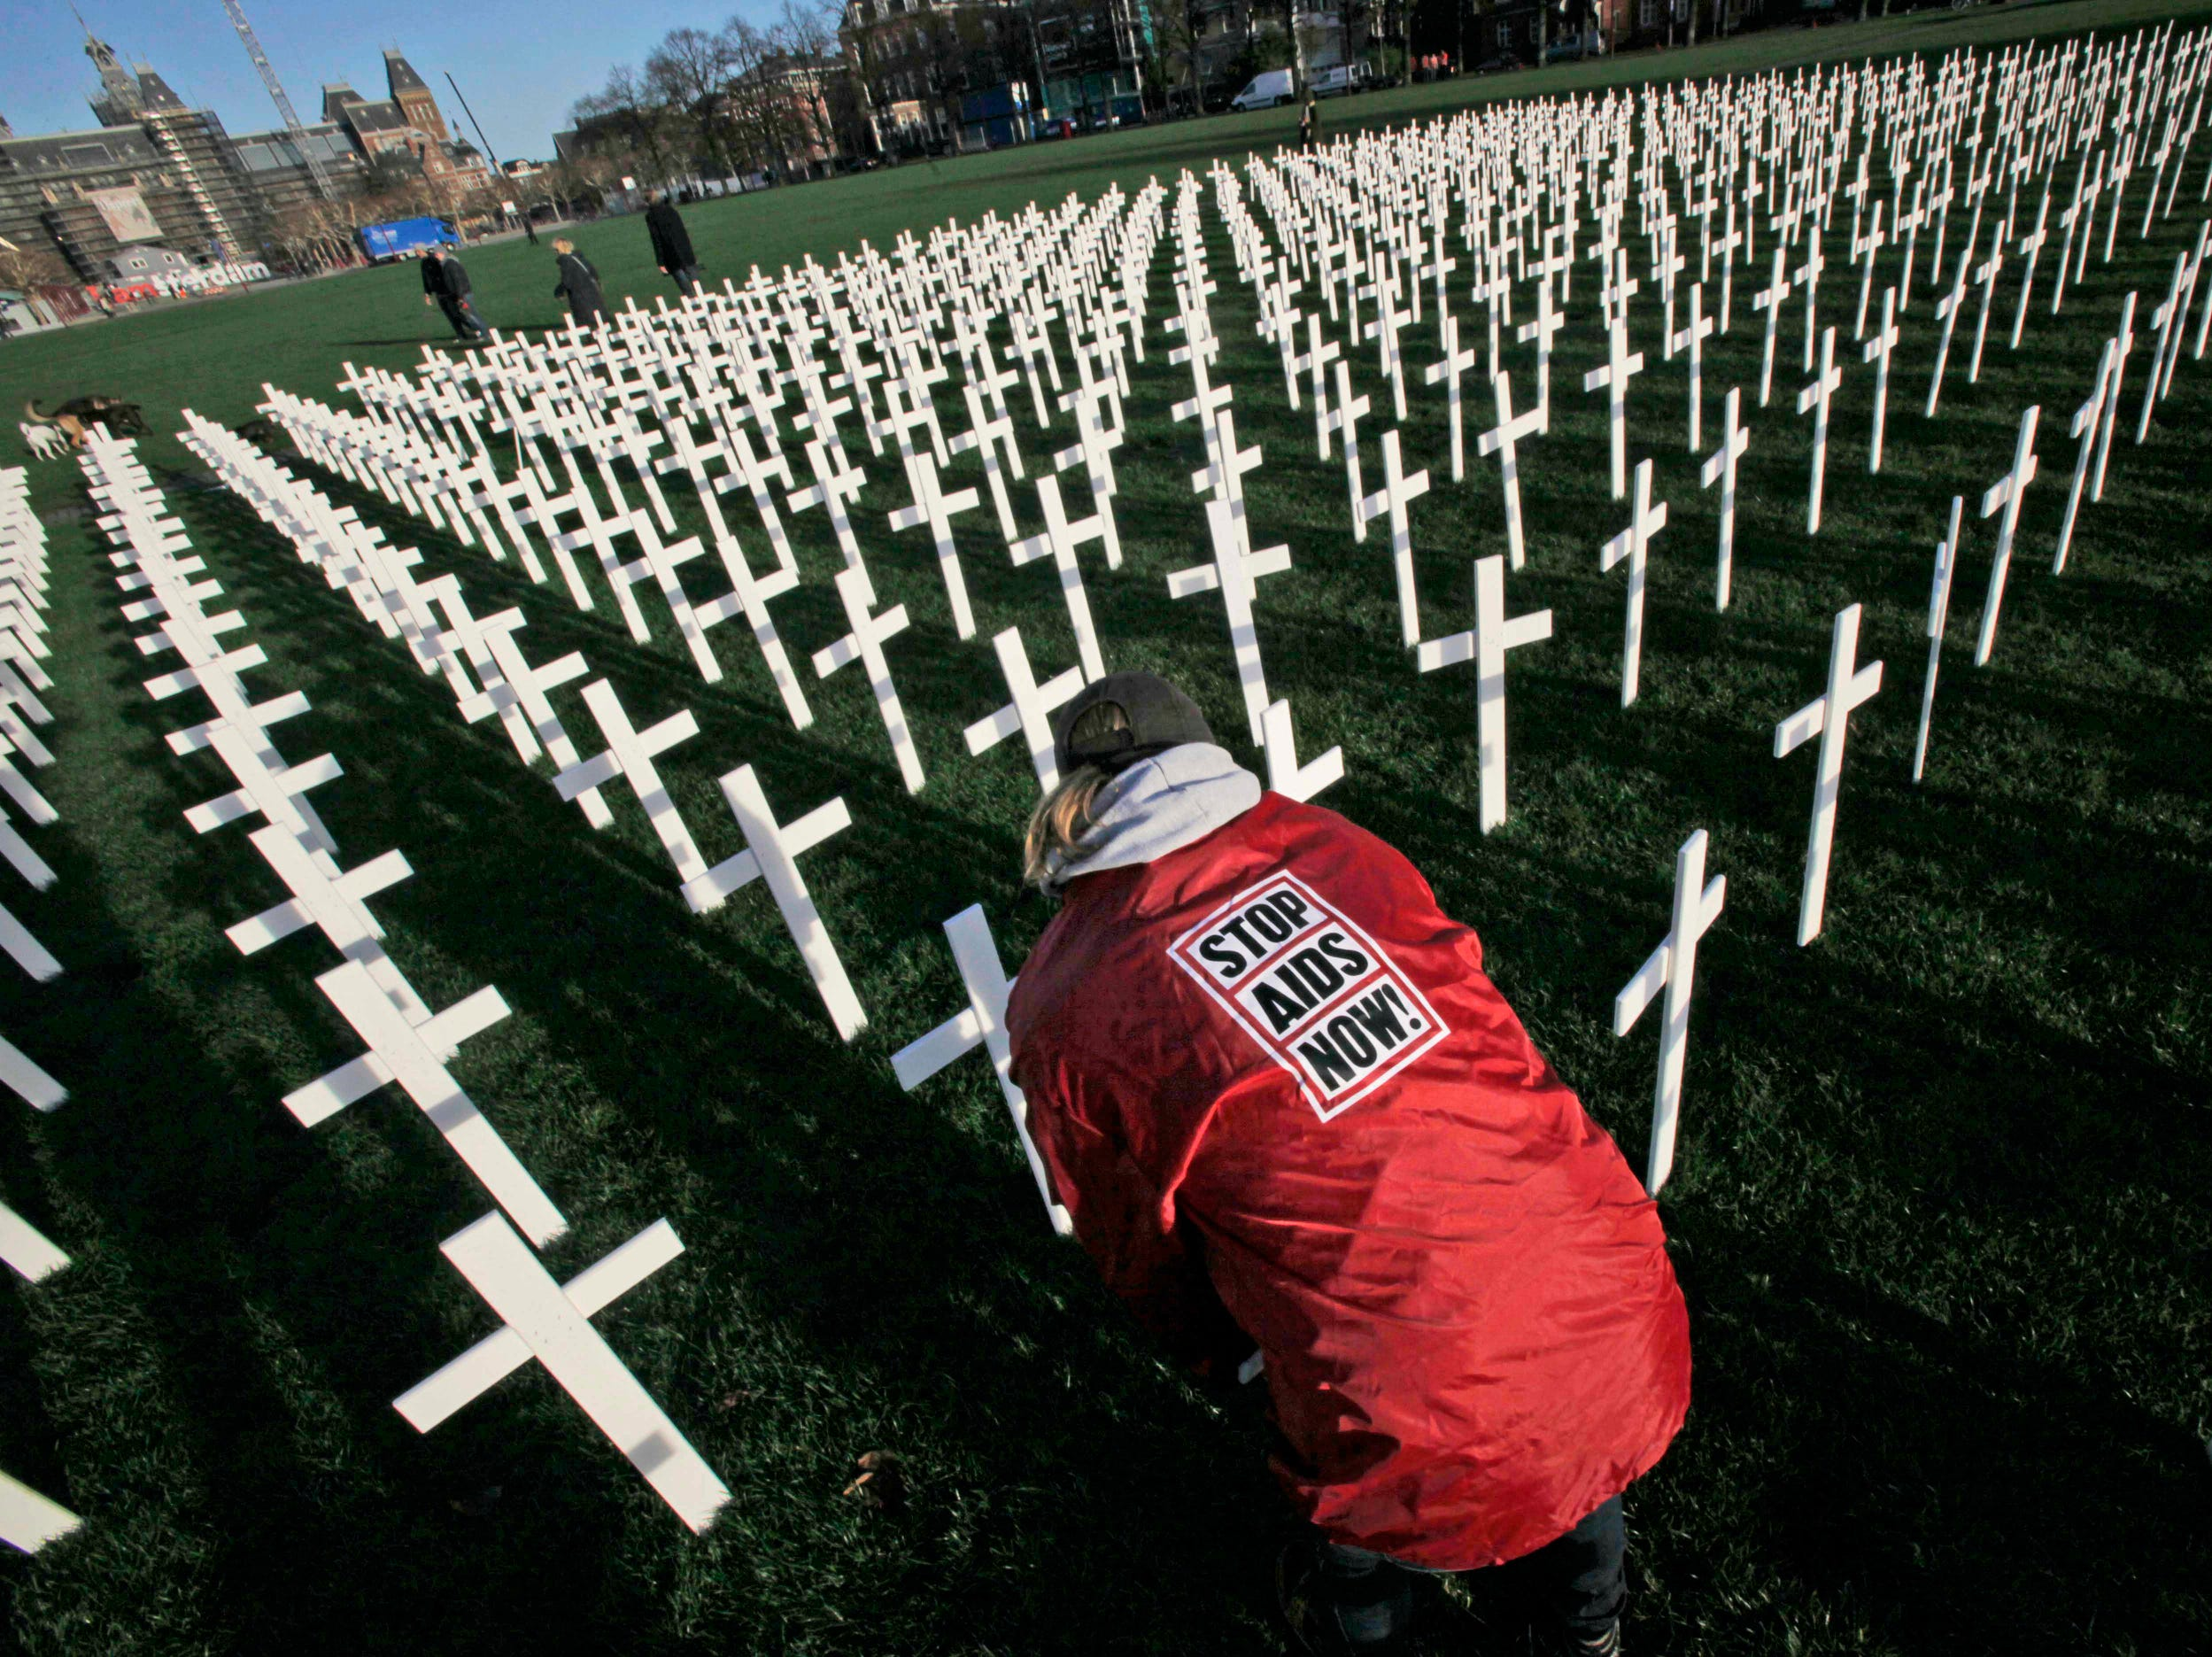 Workers remove the 5,000 crosses which were put on Museum Square to mark World Aids Day in Amsterdam, Netherlands, in 2009. The crosses, planted to look like a cemetery, symbolize the millions of Africans who die of AIDS for lack of access to proper health care and medication.